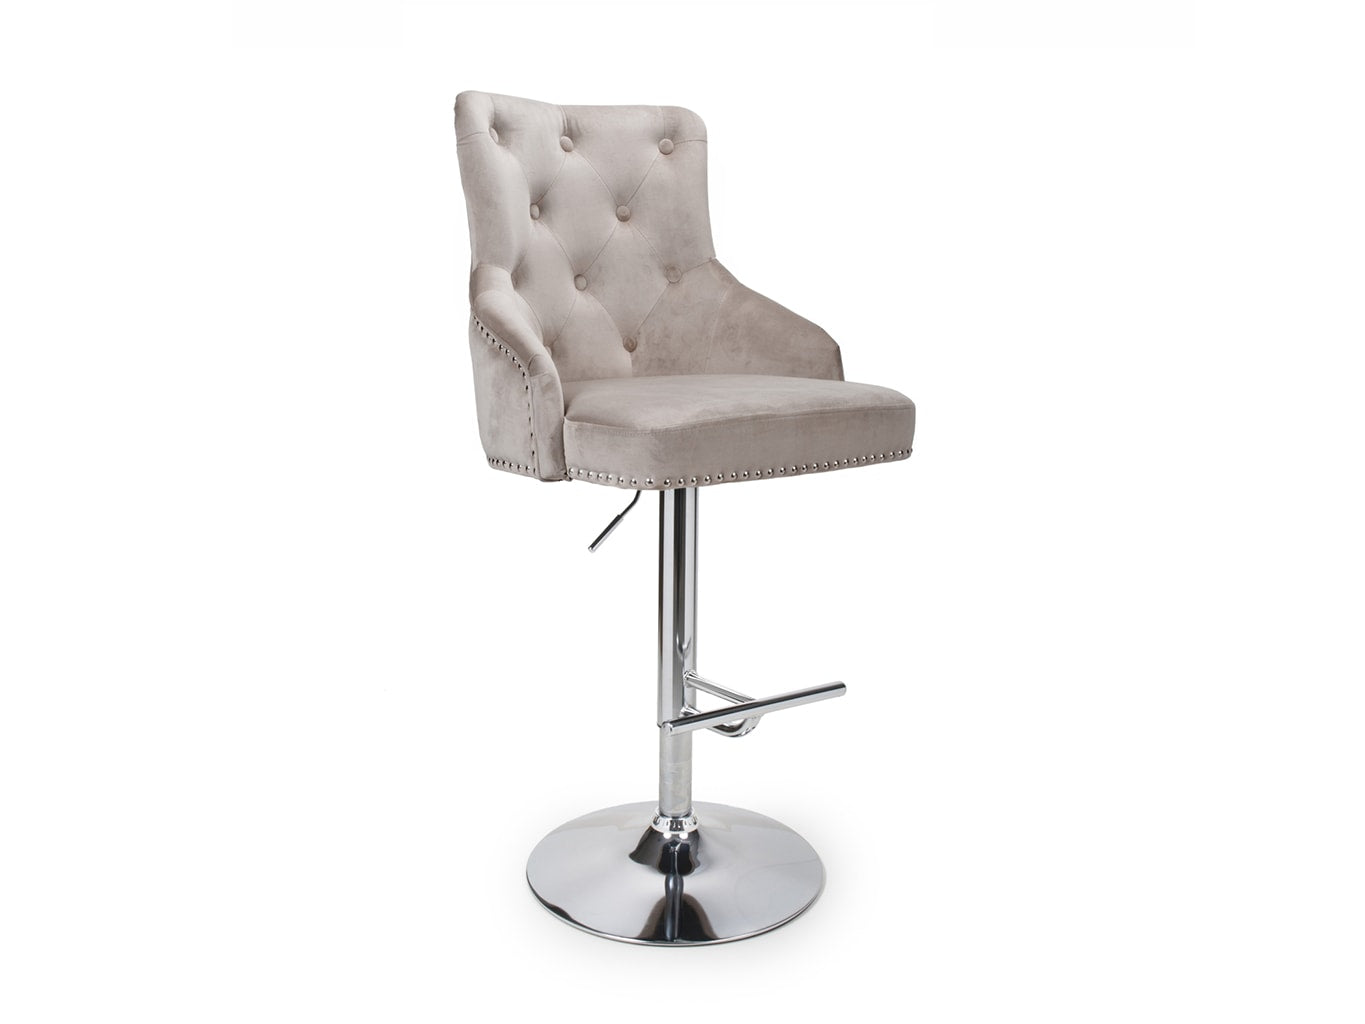 Bar stool in mink velvet upholstery, buttoned back and chrome base